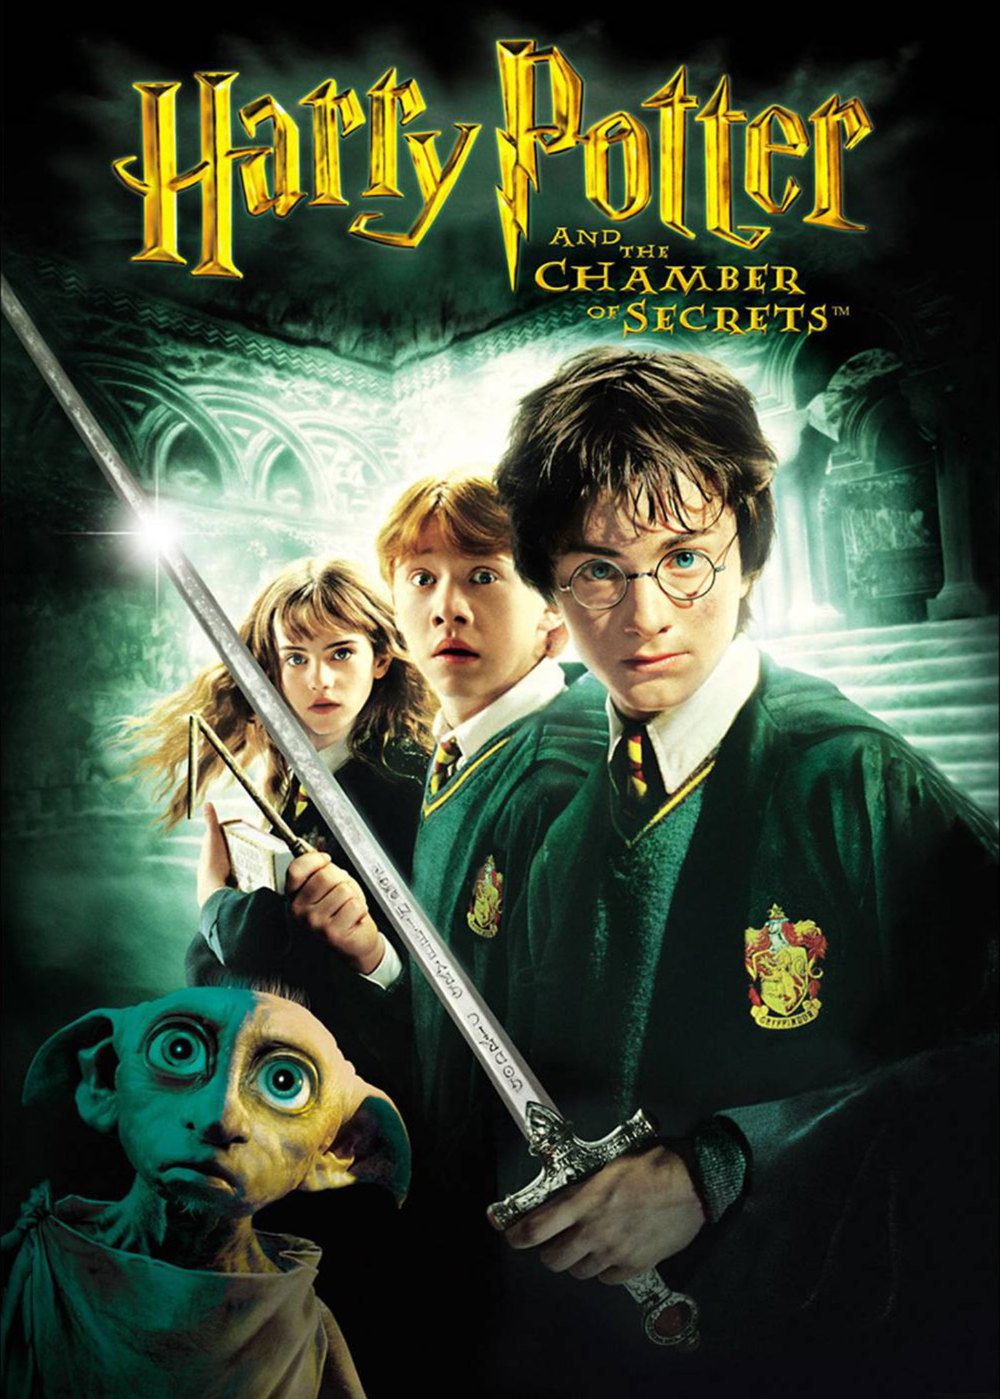 Harry-Potter-and-the-Chamber-of-Secrets-2002-Wallpapers.png